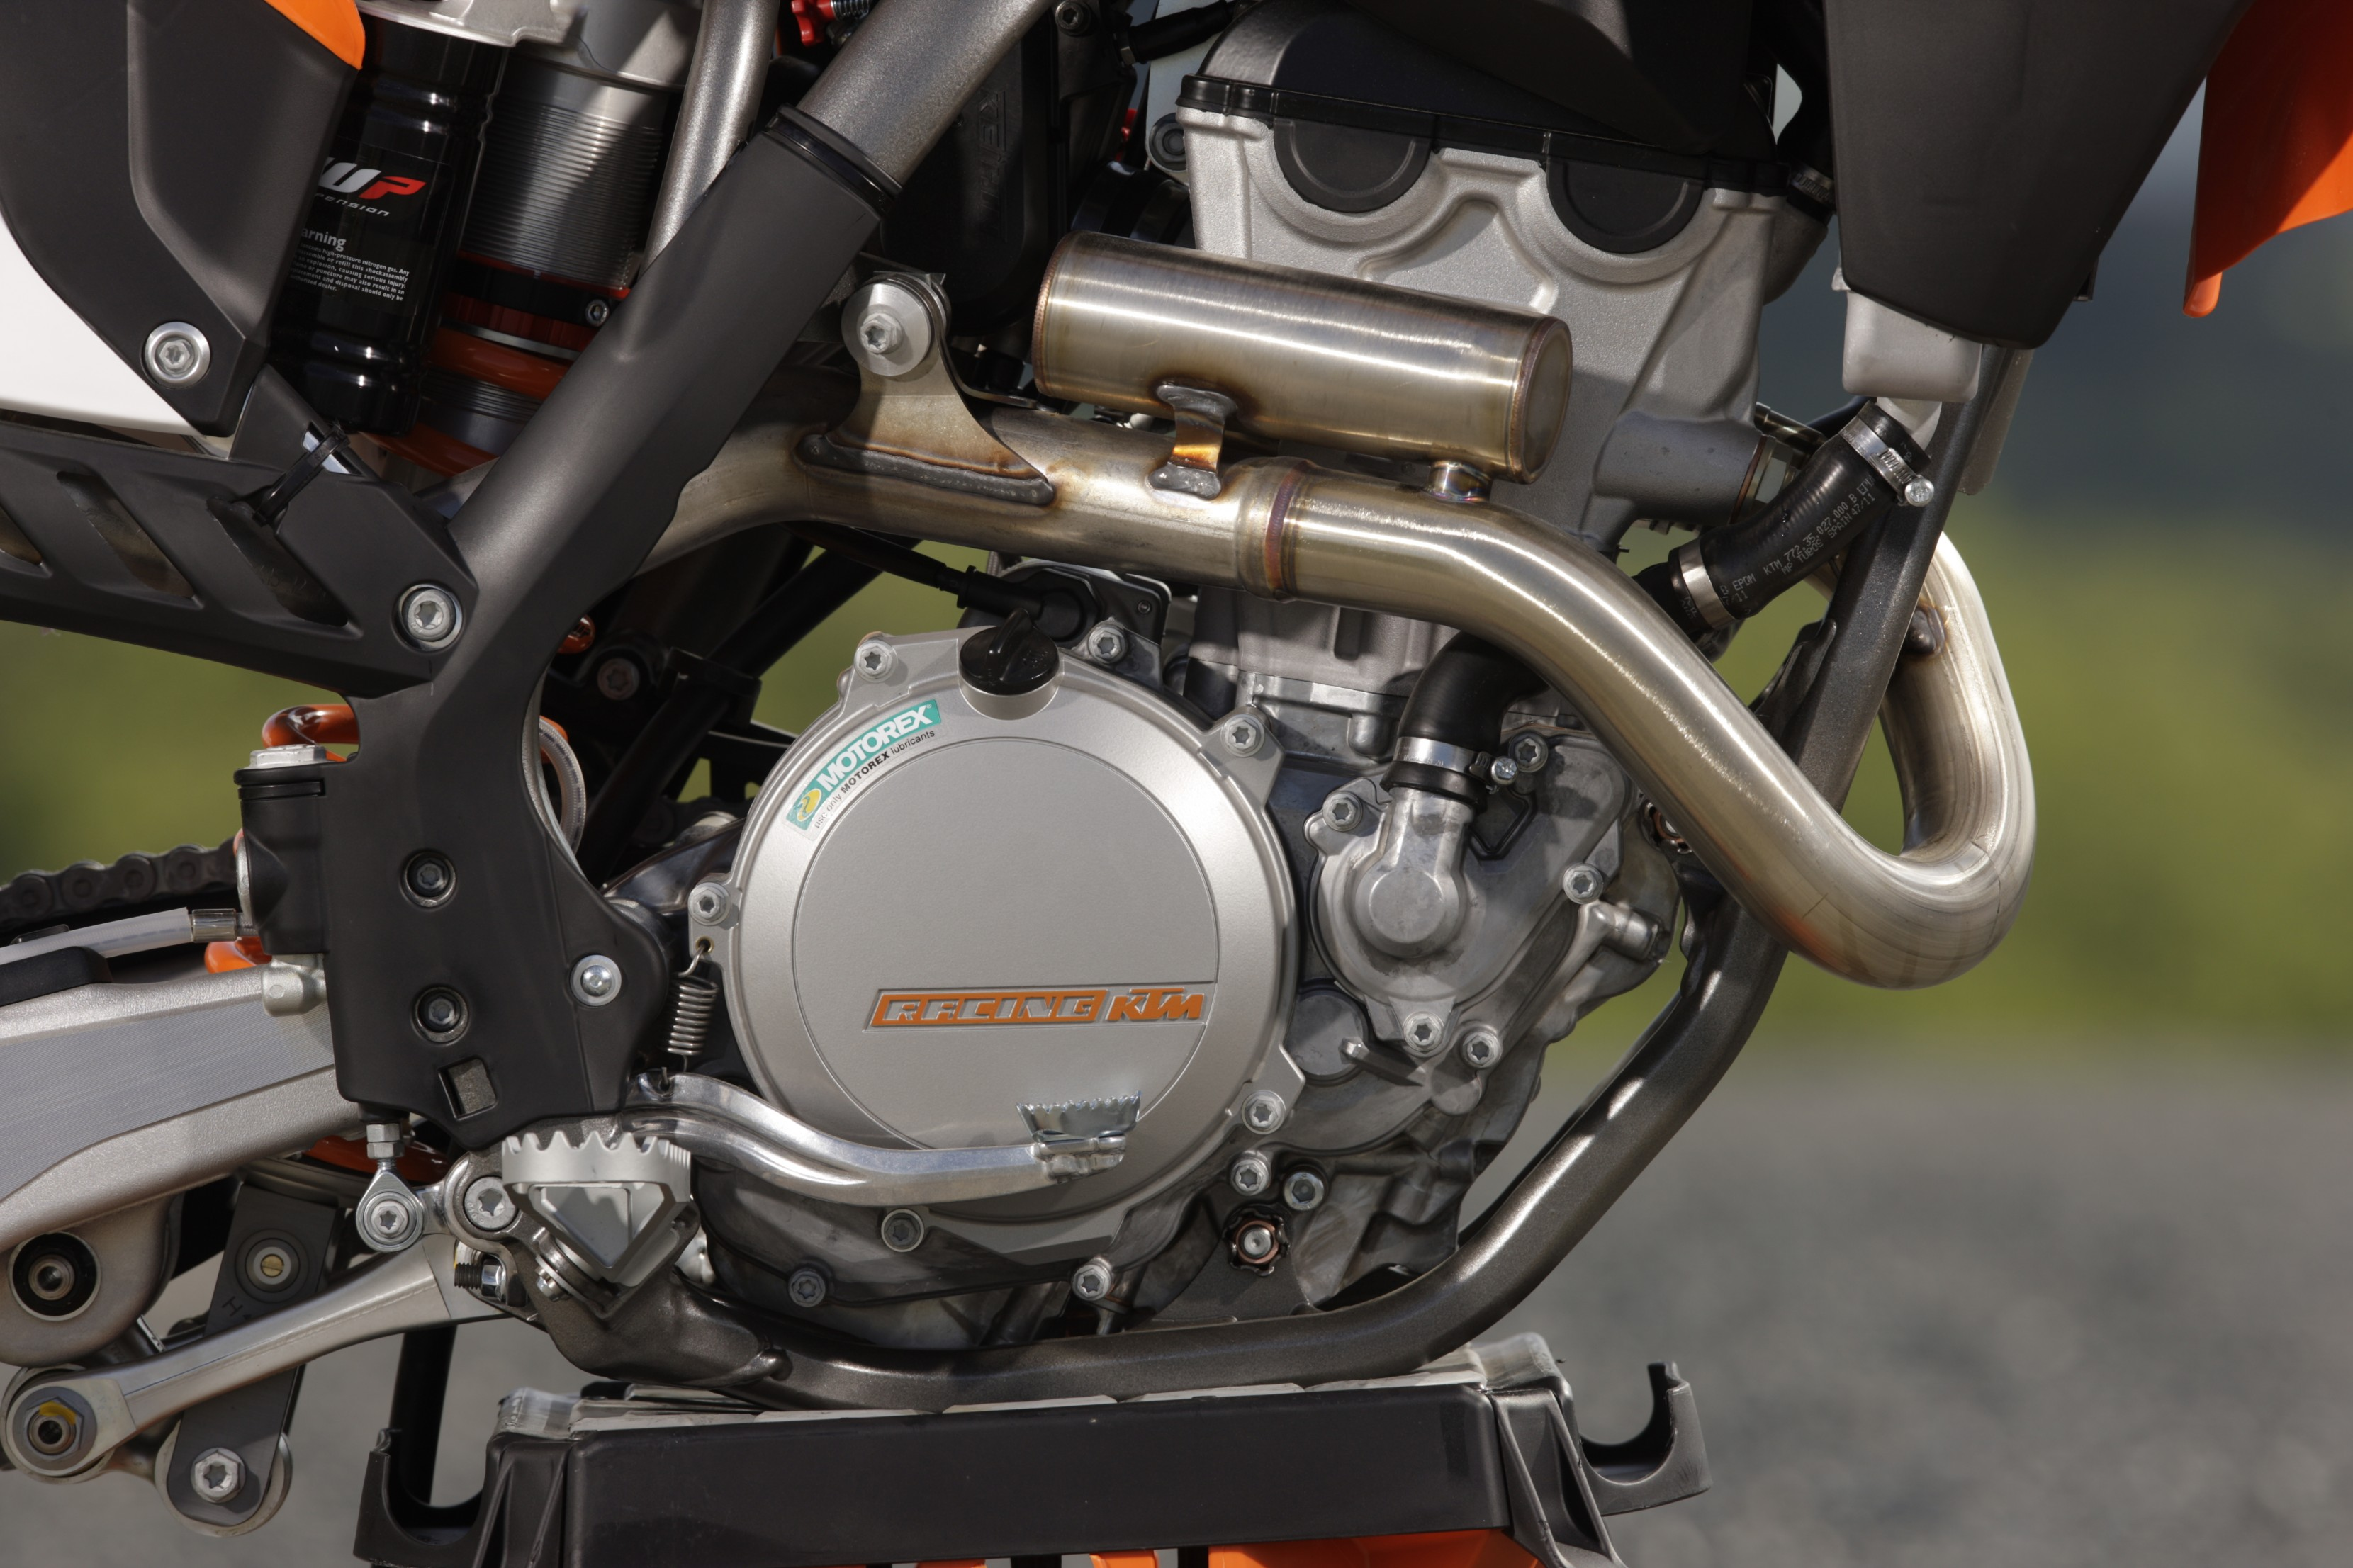 Lc8 Ktm Motorcycle Engine Diagrams Wiring Library Share